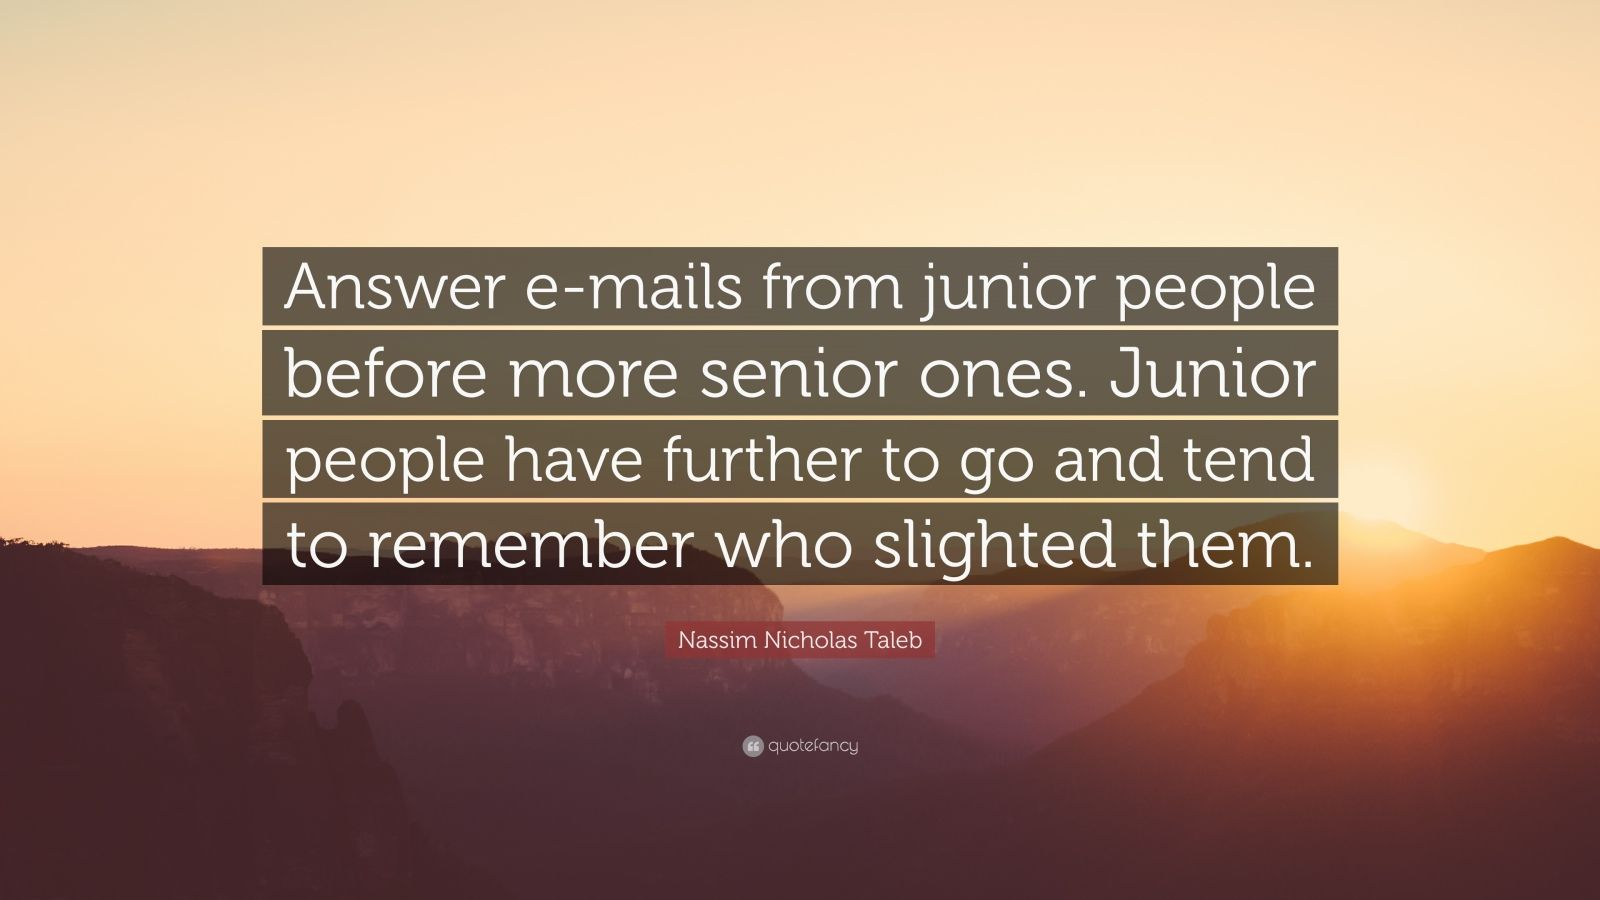 """Nassim Nicholas Taleb Quote: """"Answer e-mails from junior people before more senior ones. Junior people have further to go and tend to remember who slighted them."""""""